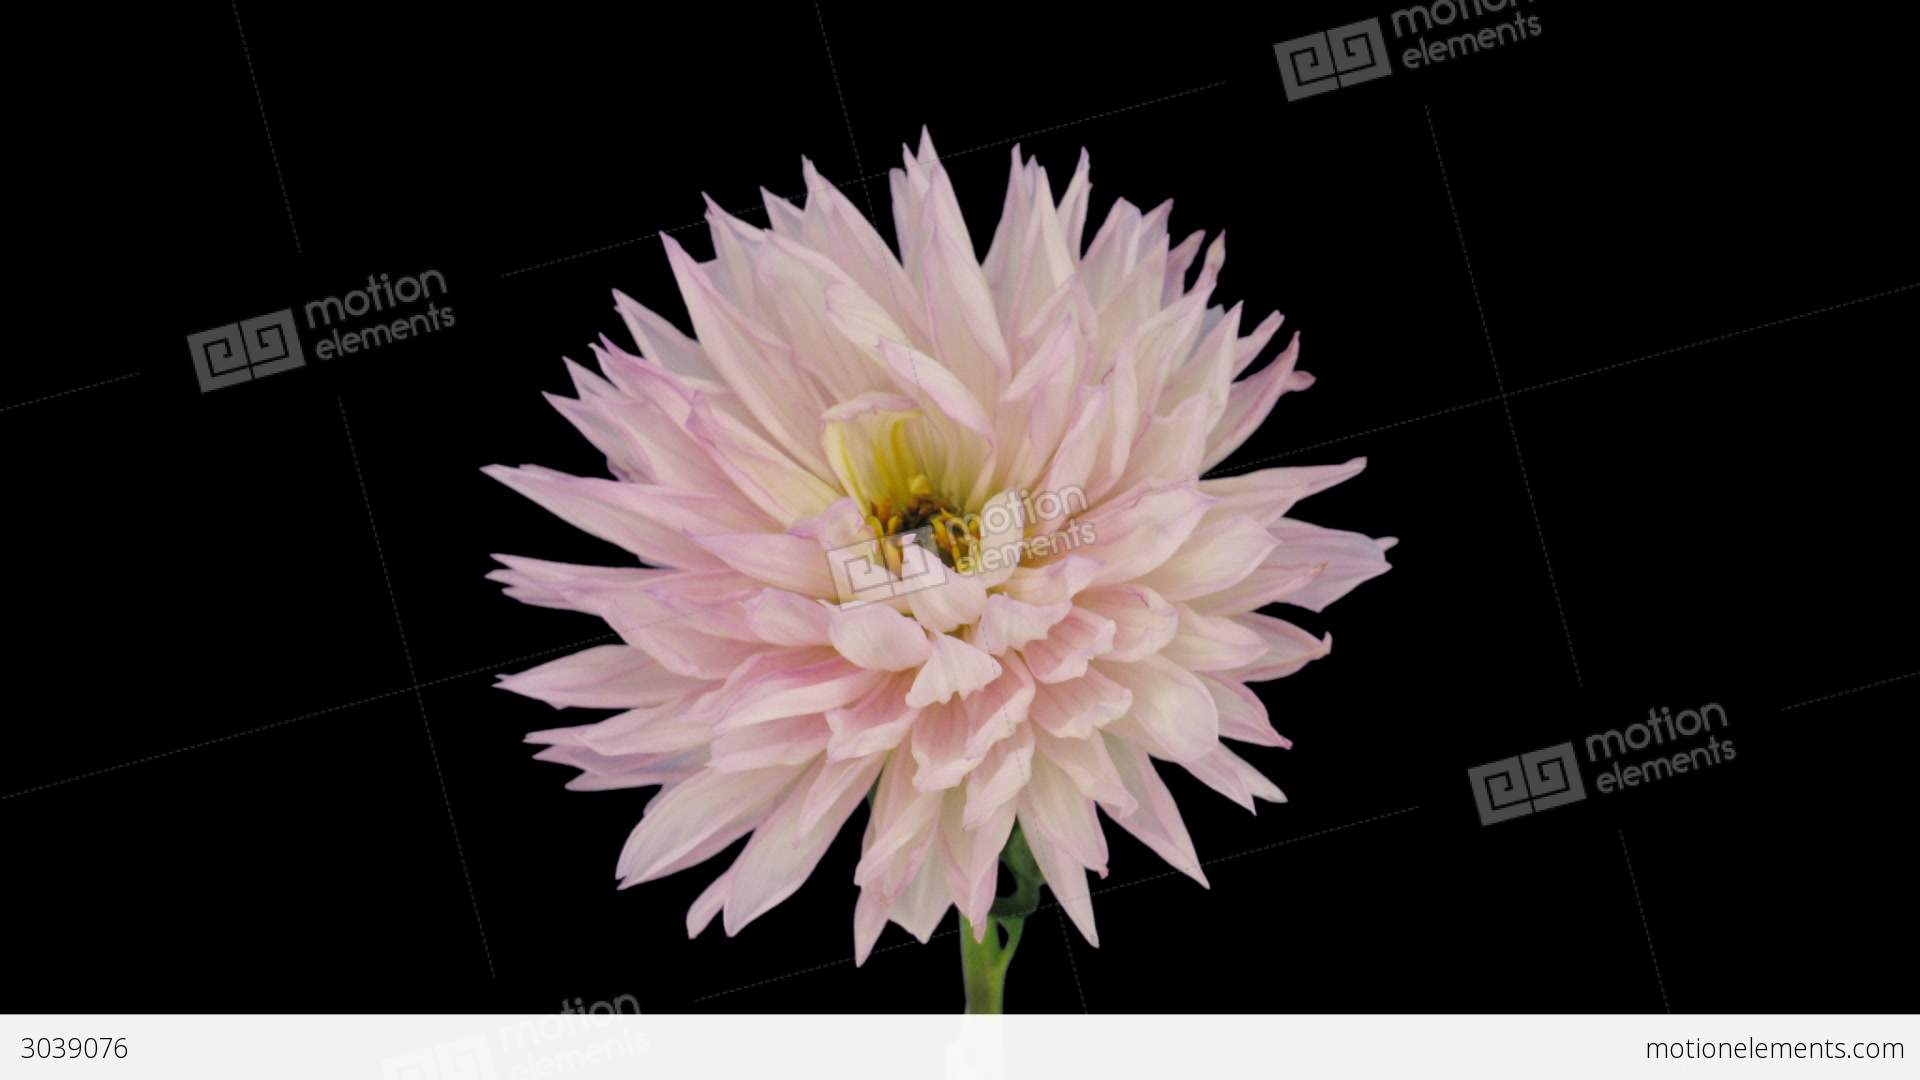 Time lapse of dying pink dahlia flower 6x1 stock video footage 3039076 time lapse of dying pink dahlia flower 6x1 stock video footage izmirmasajfo